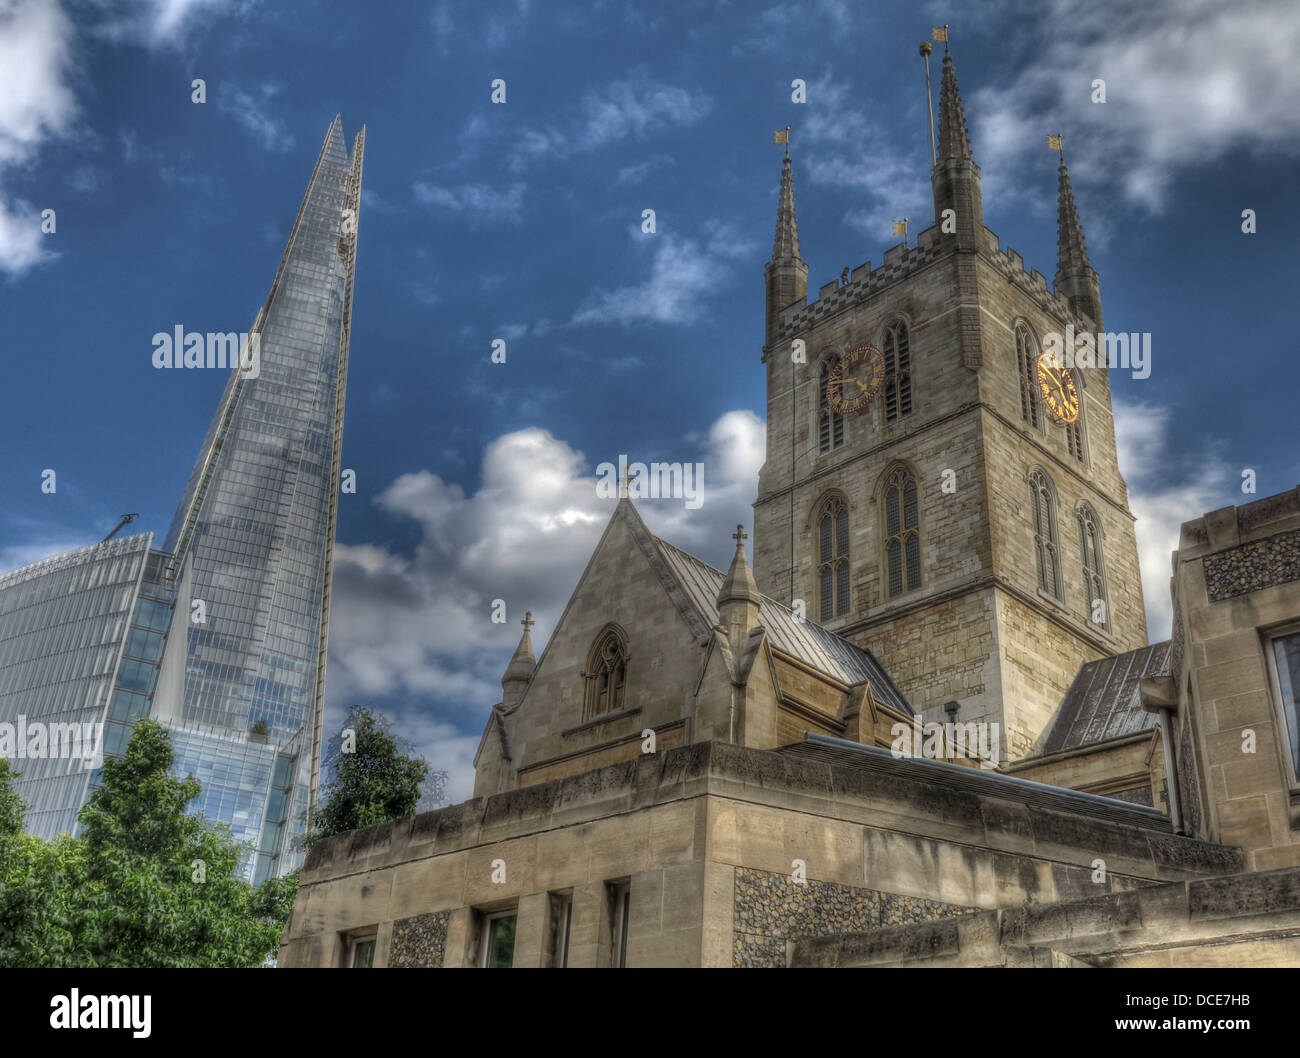 contrast,of,architecture,sunny,glass,building,buildings,old,new,contrasts,2013,summer,GB,great,Britain,British,mix,mixture,of,styles,tourist,tourism,city,of,windows,tallest,shine,church,religious,Anglican,Anglicans,gotonysmith,Buy Pictures of,Buy Images Of